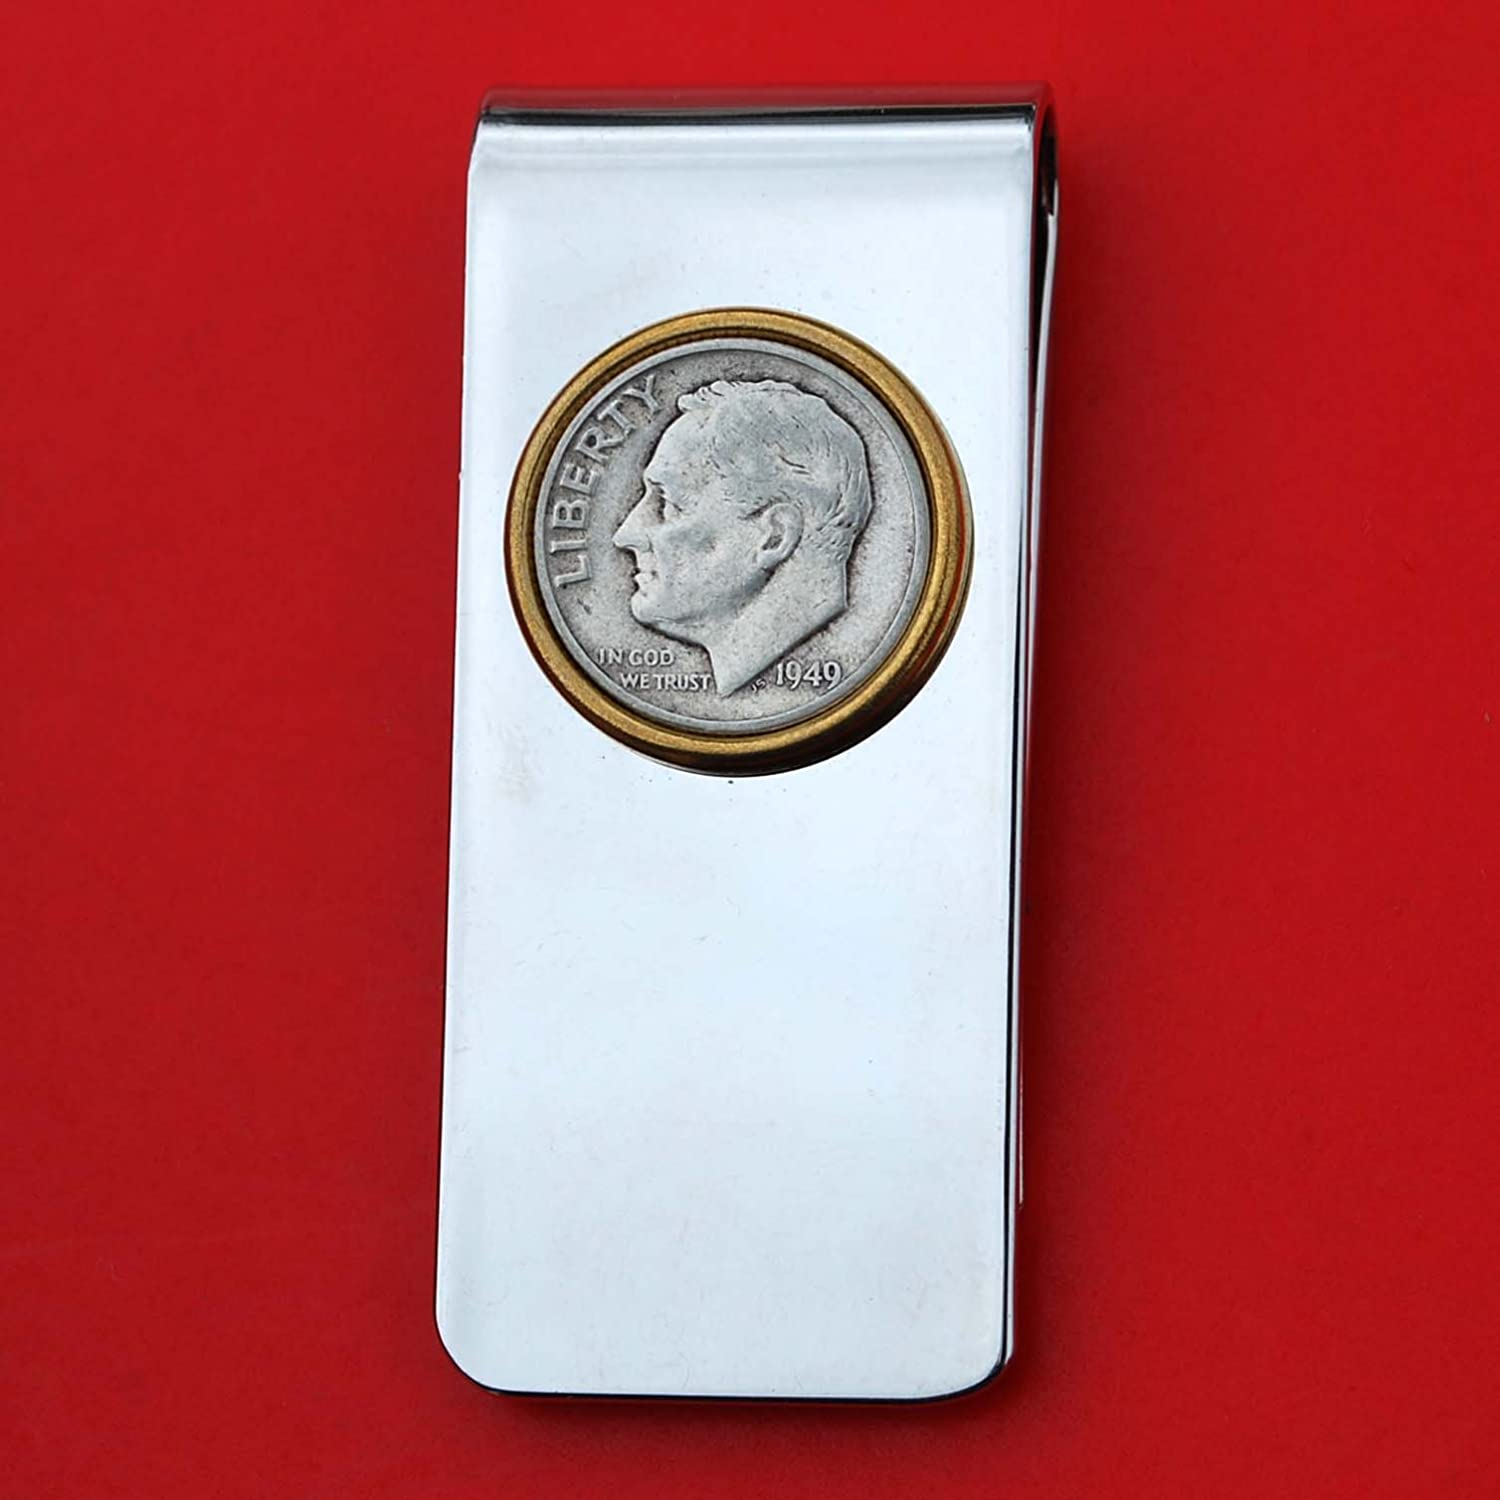 US 1949 Roosevelt Dime 90% Silver Coin Solid Brass Gold Silver Two Tone Money Clip New - High Quality